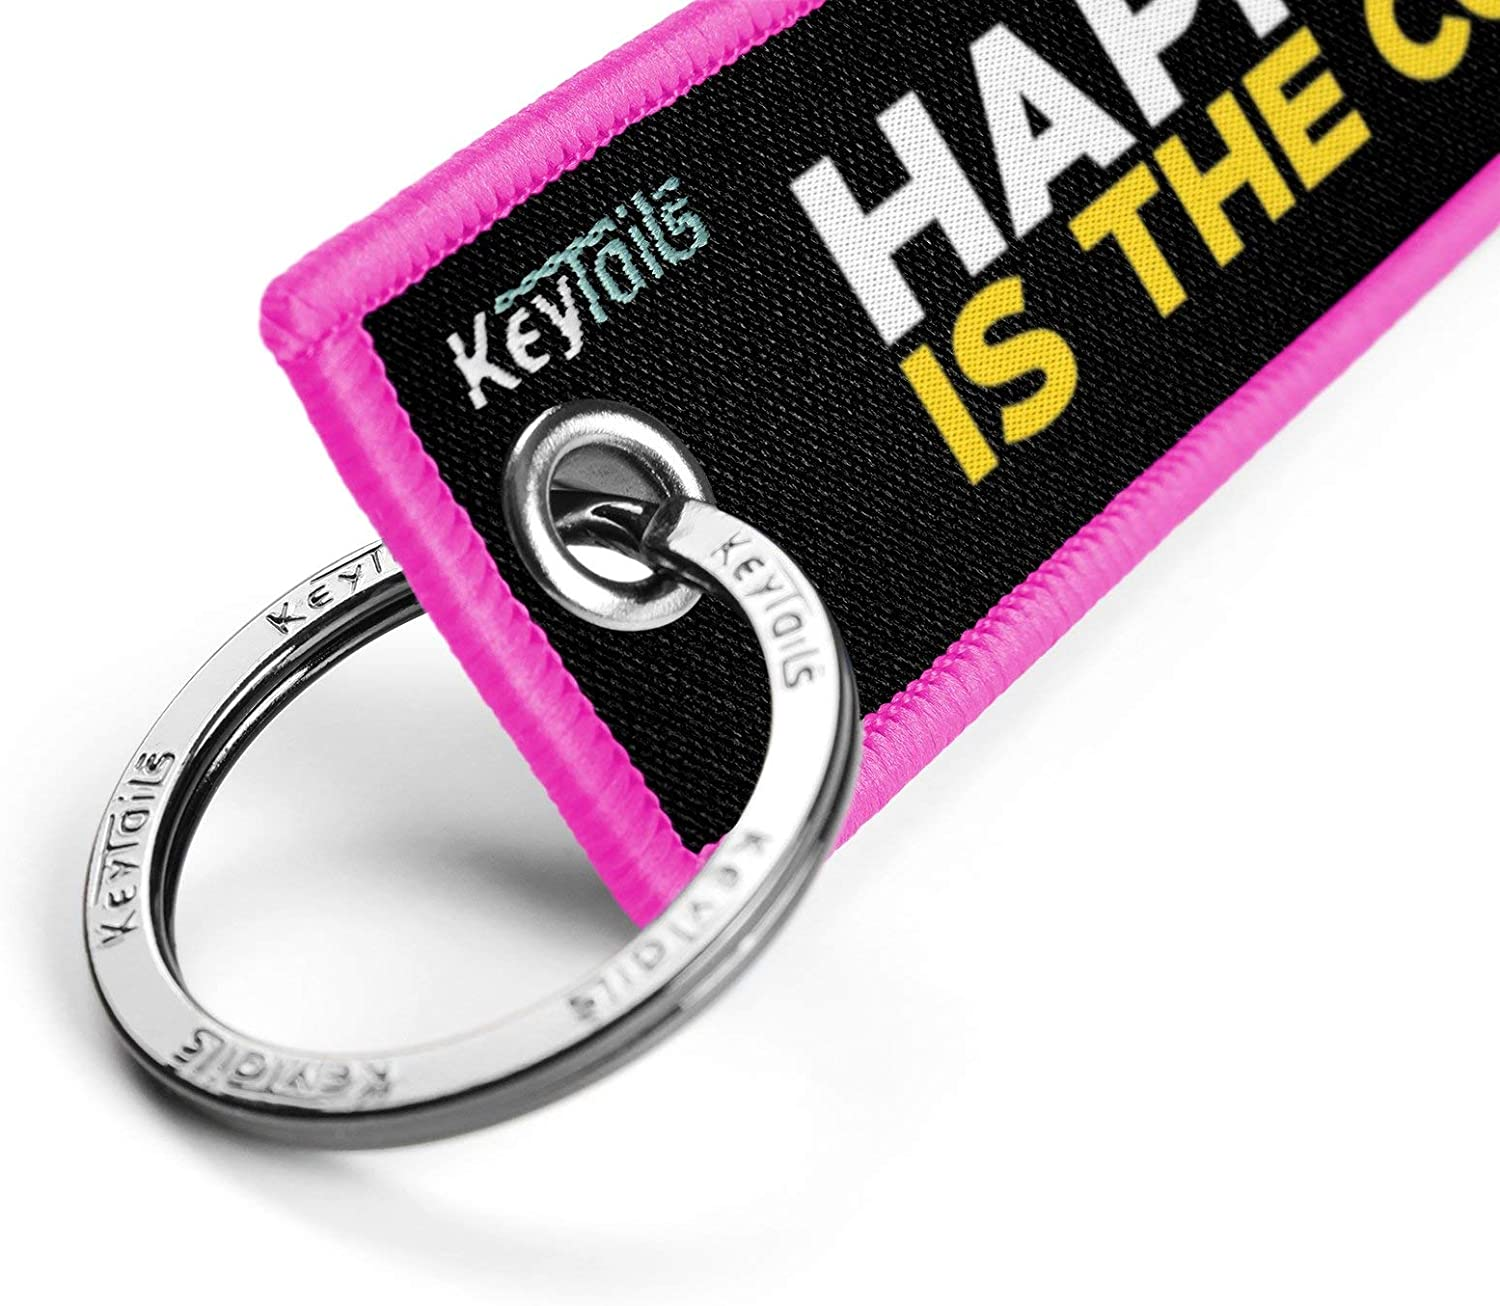 Premium Quality Key Tag for Motorcycle KEYTAILS Keychains ATV Happiness is The Corner UTV Car Scooter